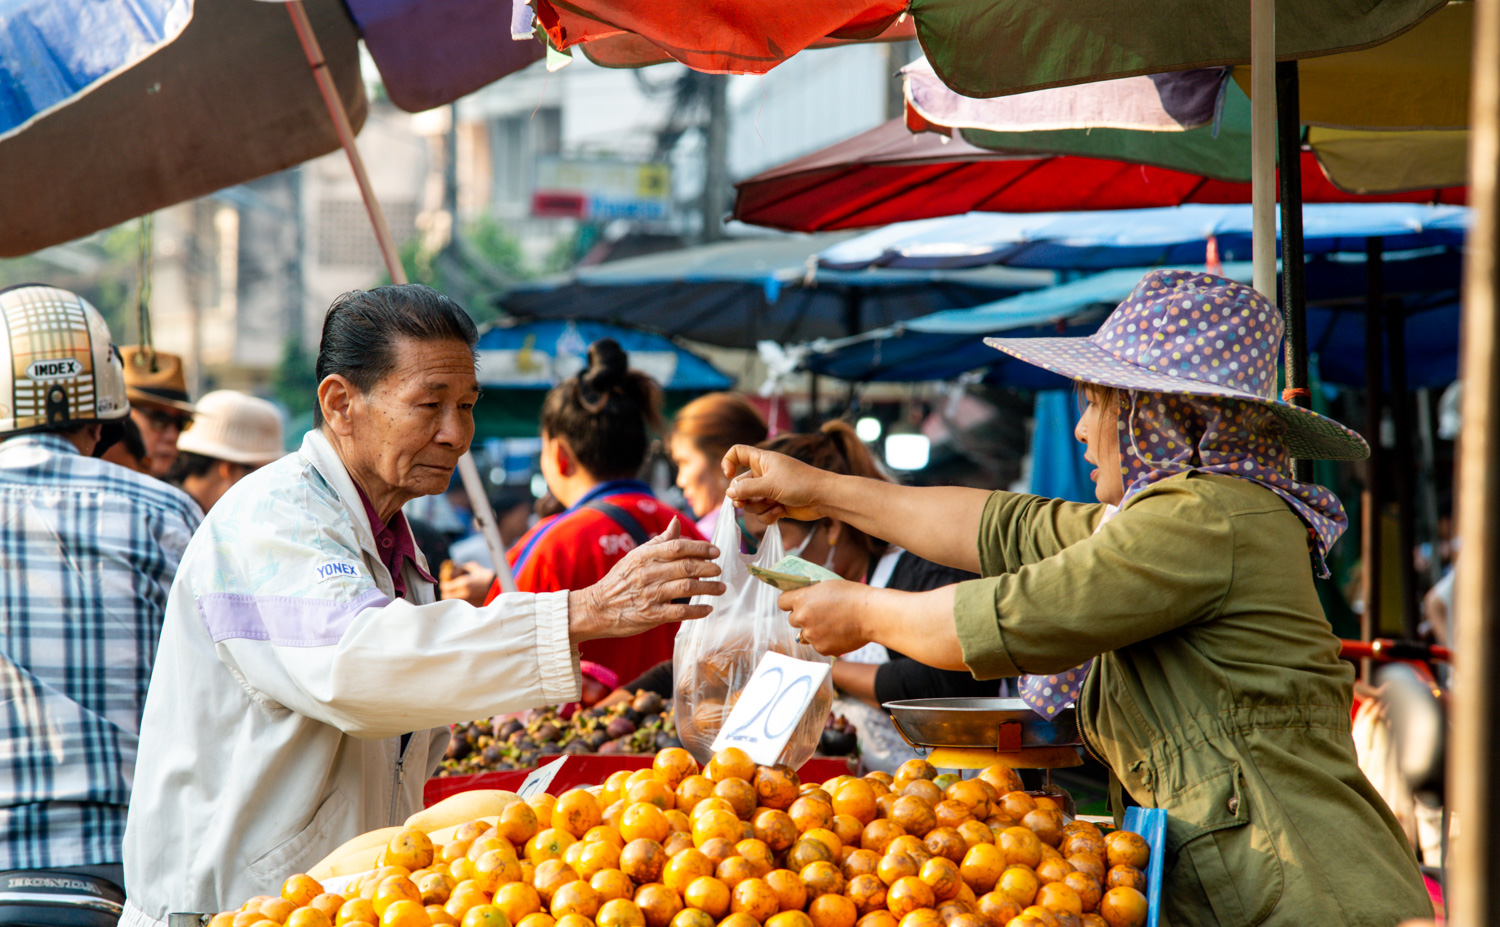 Fruit Vendor Documentary Travel Photography: How to Add More Interest to Your Travel Photos